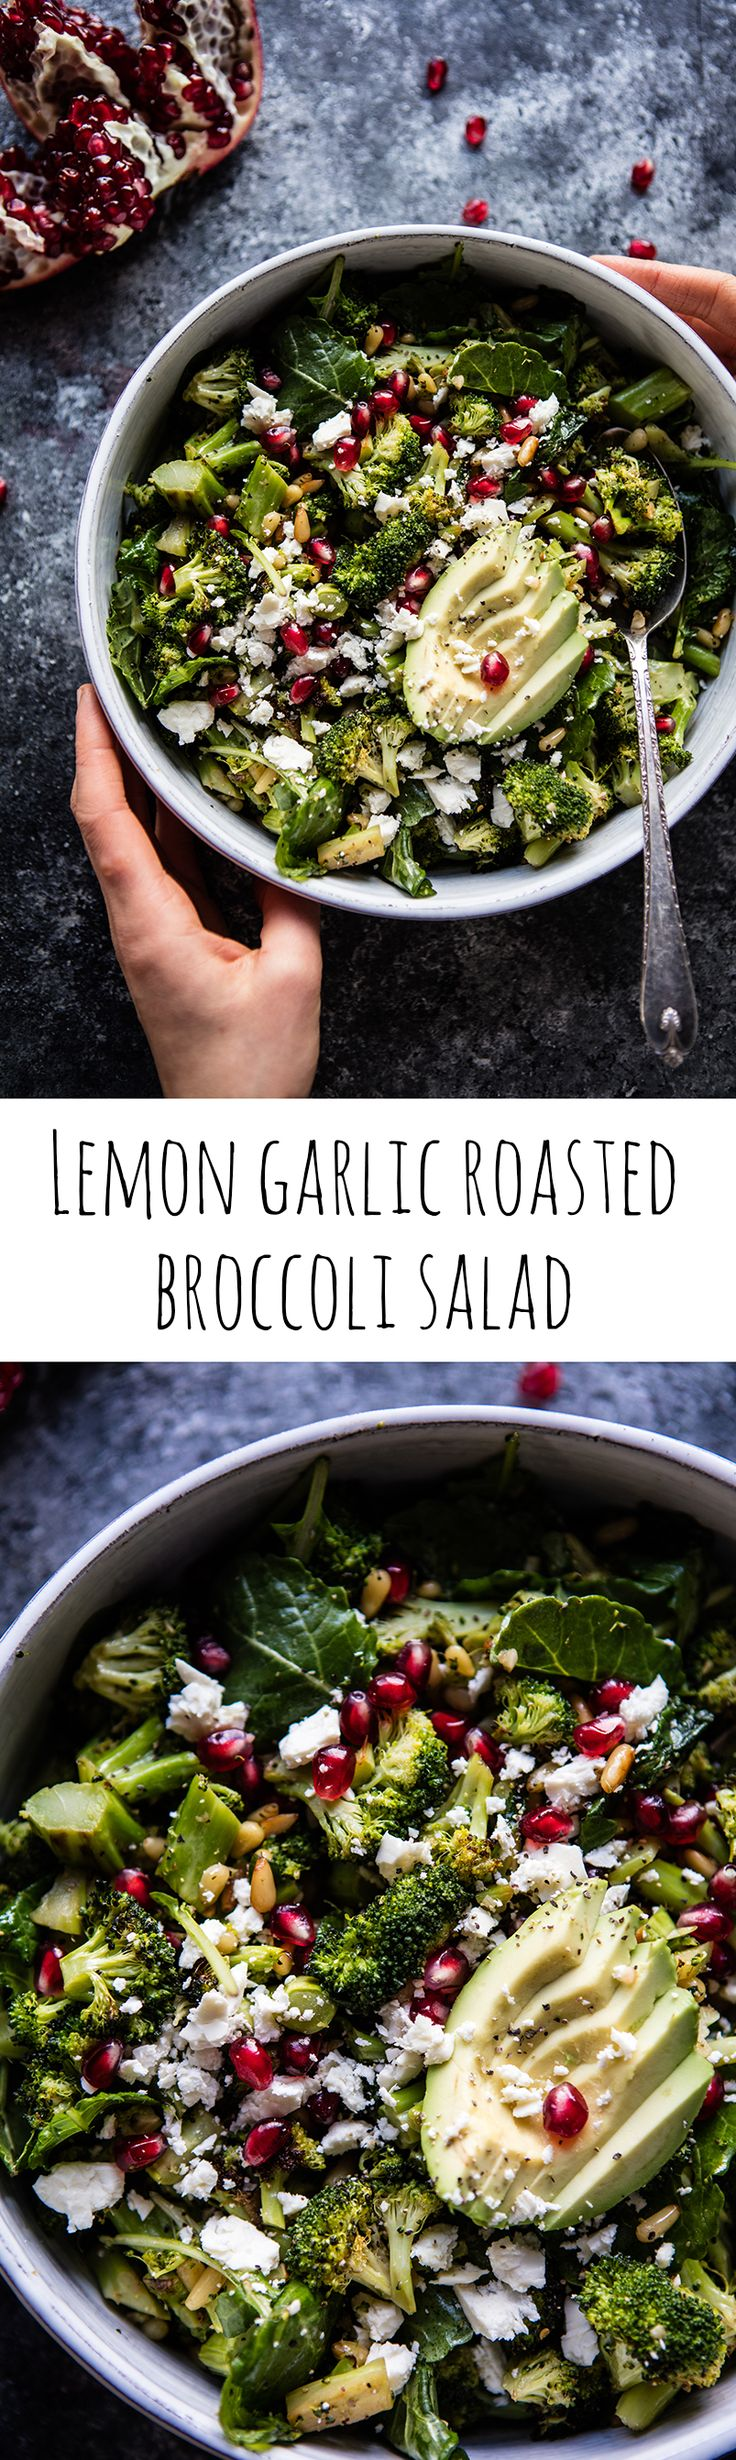 Lemon Garlic Roasted Broccoli Salad | halfbakedharvest.com @Half Baked Harvest